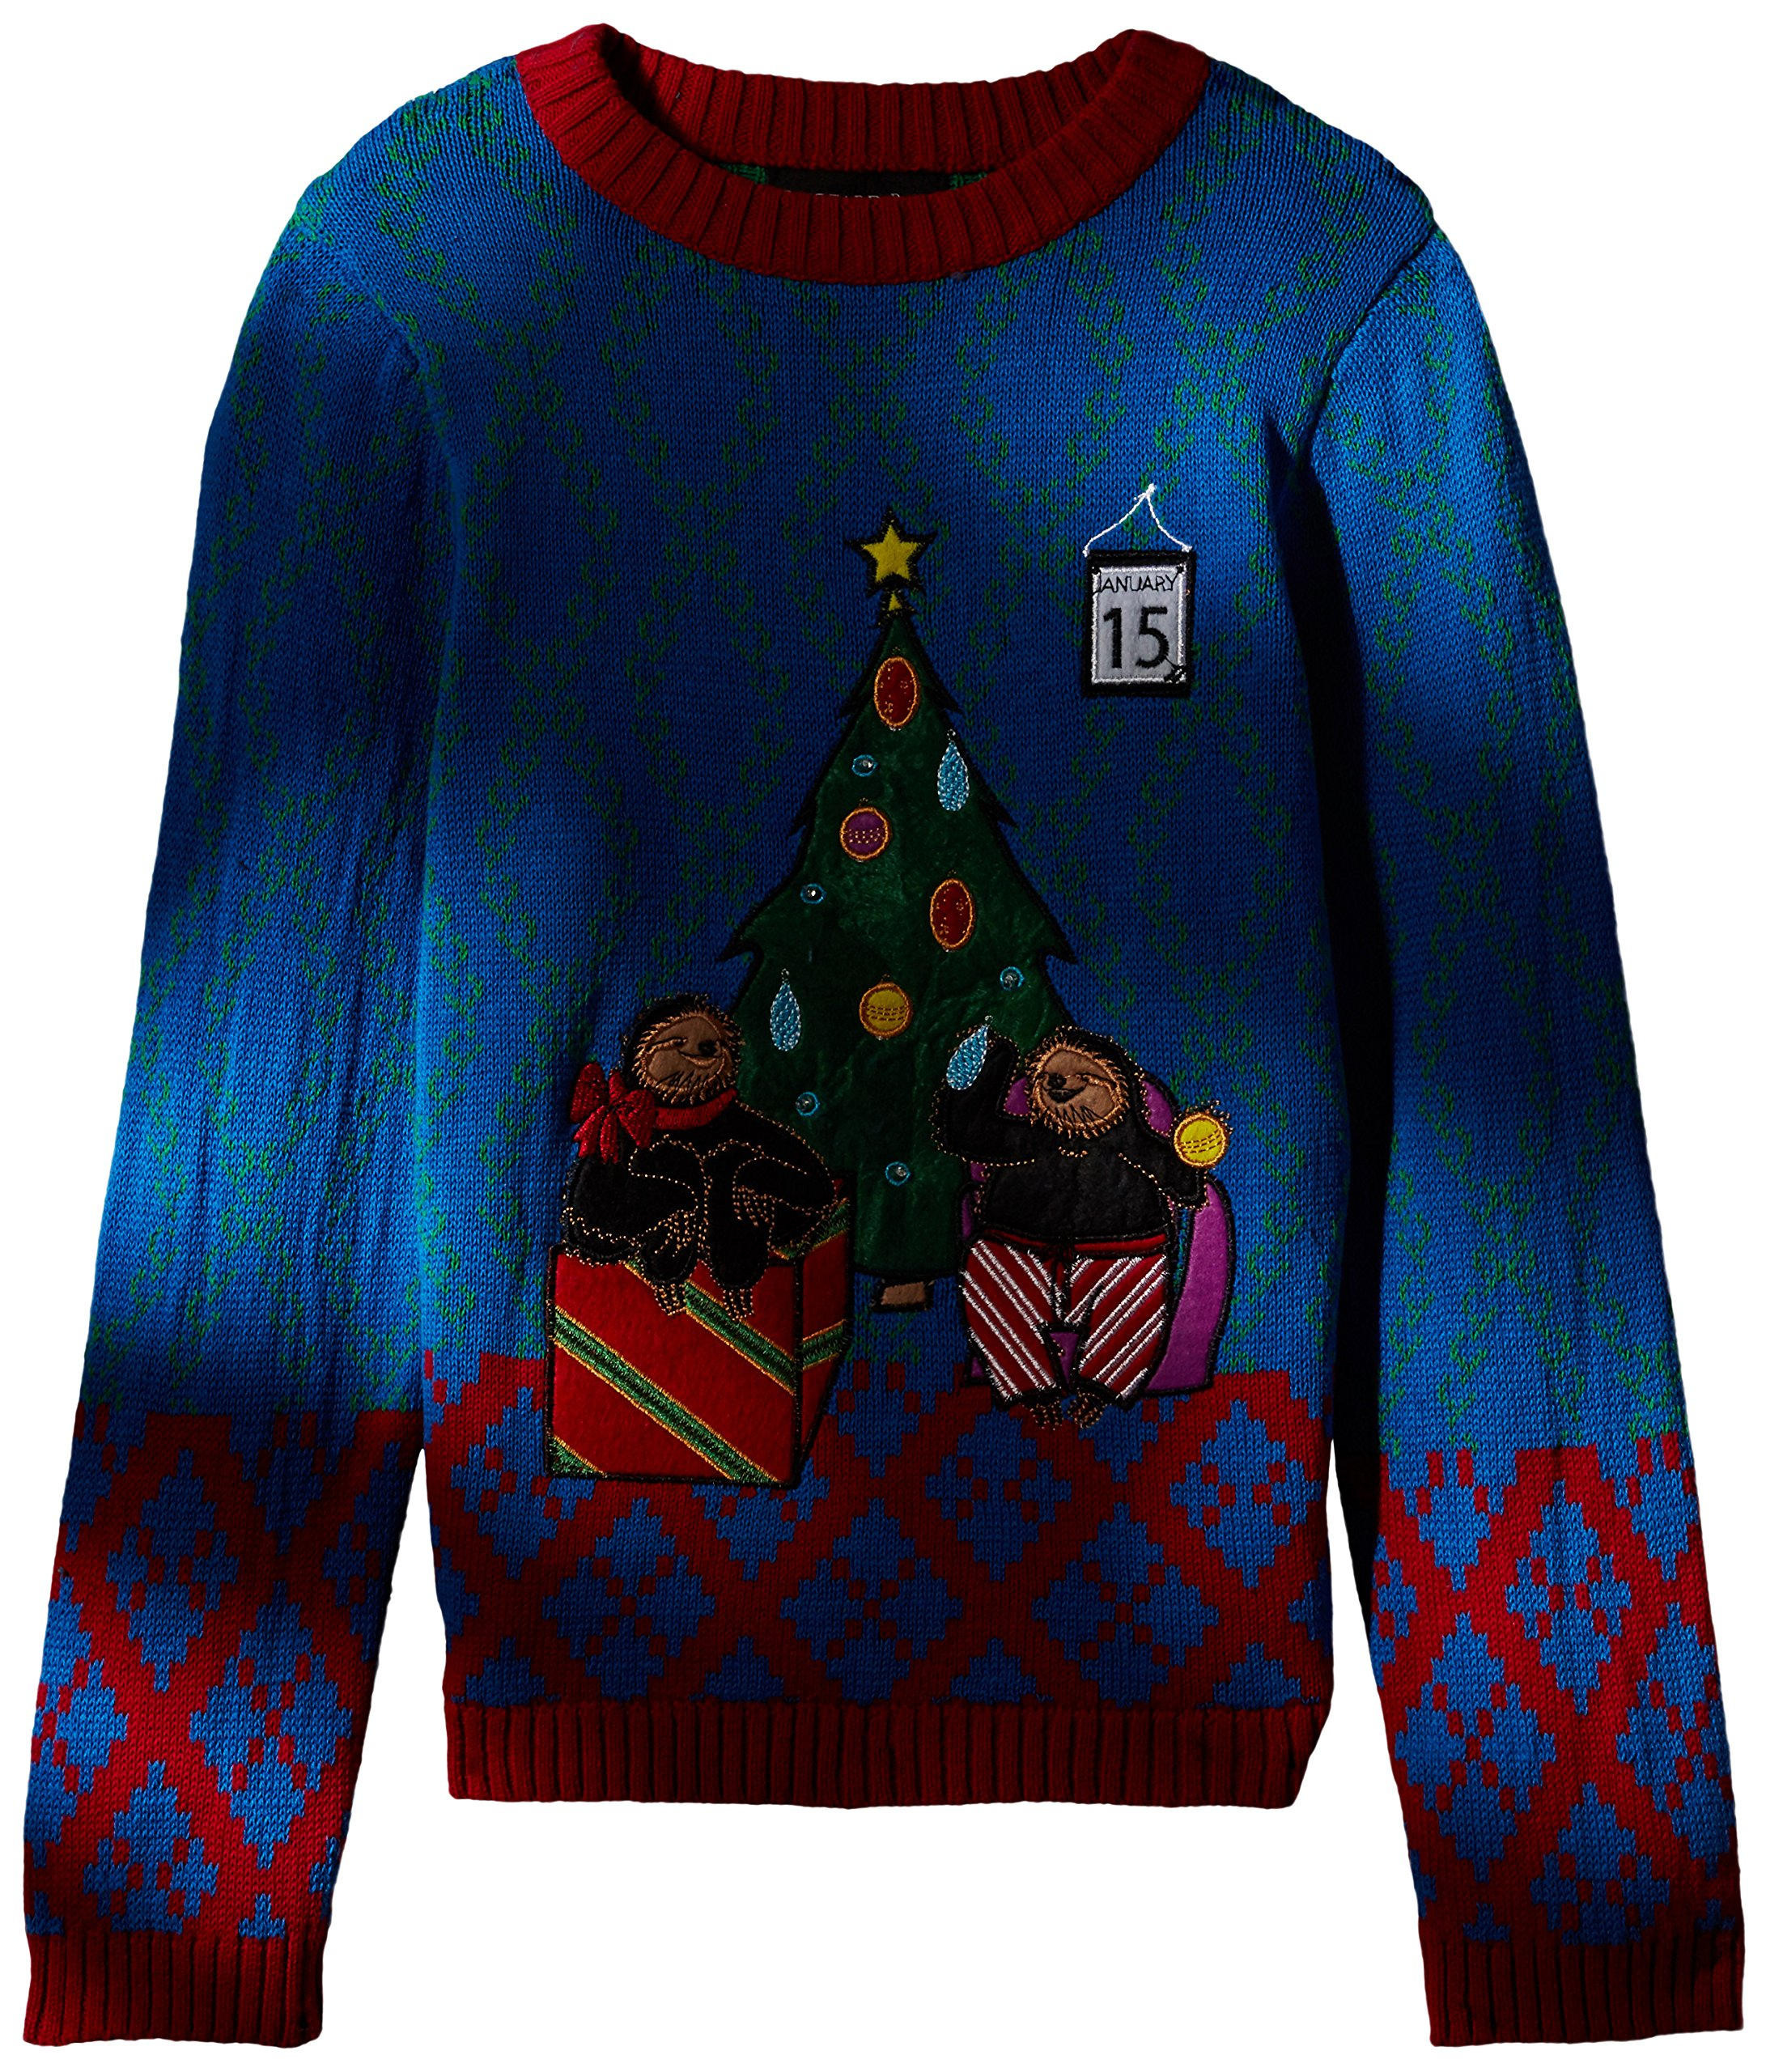 Blizzard Bay Big Boys' Tardy Sloths Light Up Xmas Sweater, Blue/red, 8/10 S